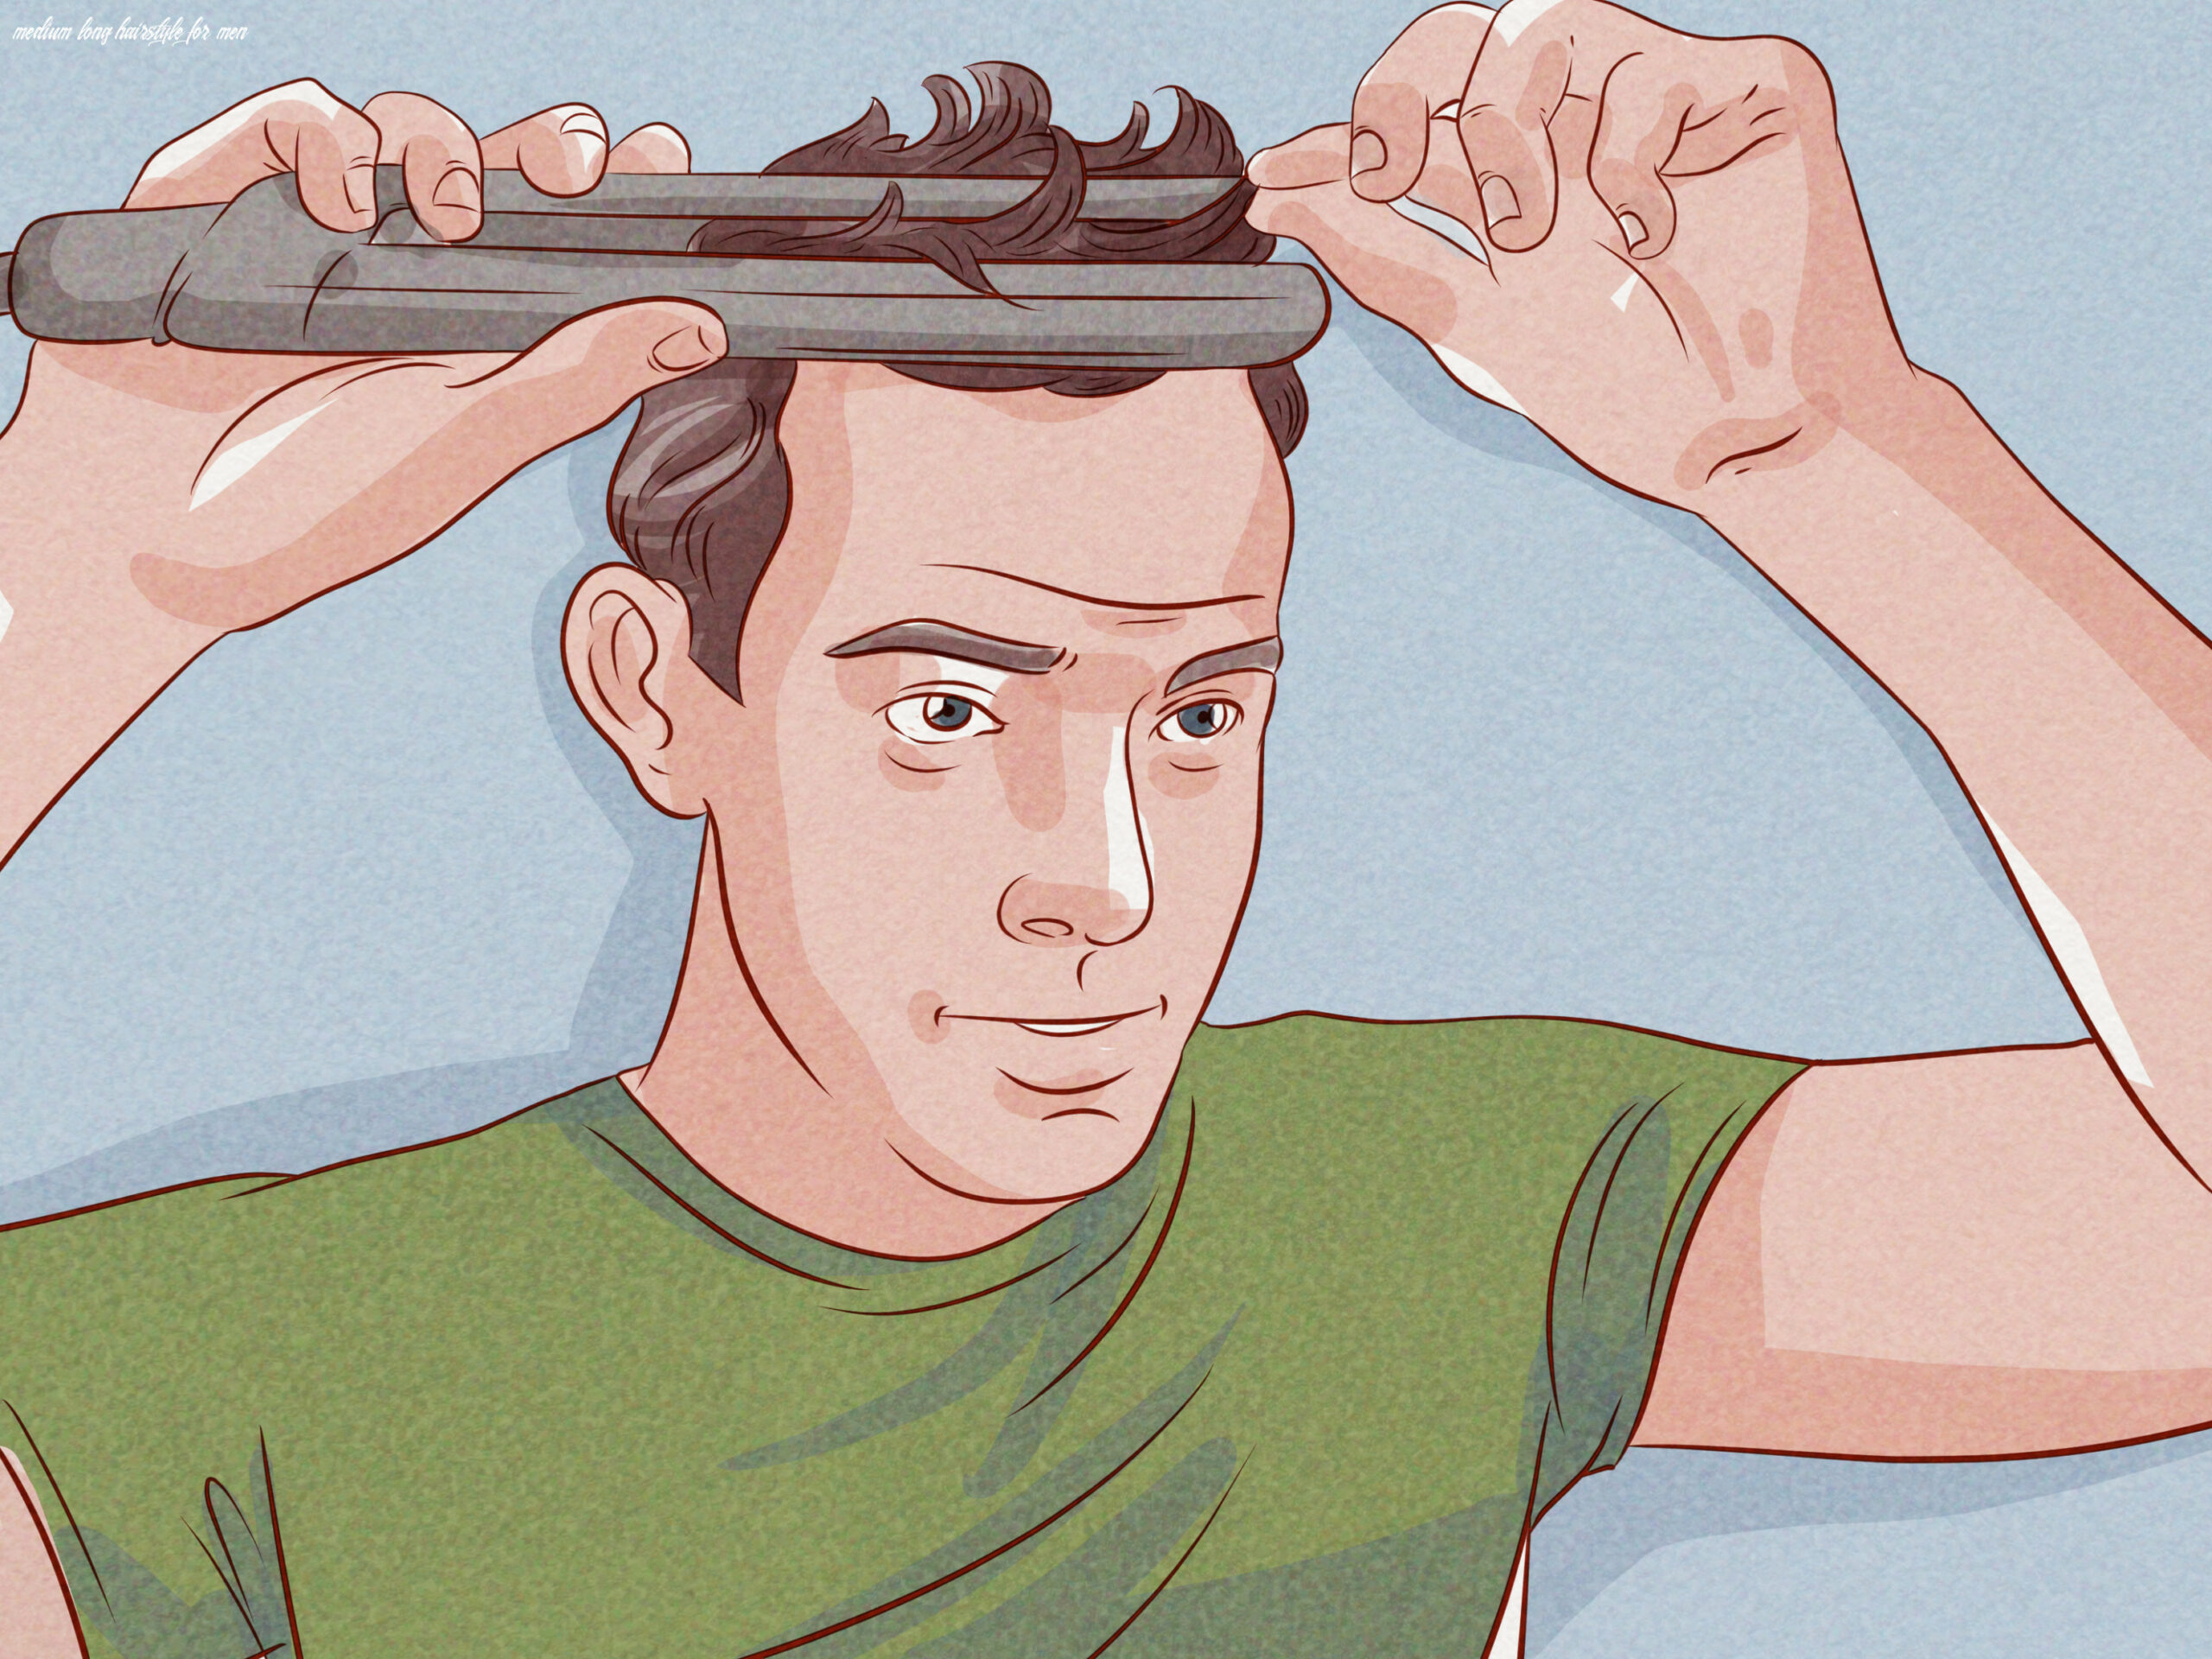 11 Ways to Style Medium Length Hair for Men - wikiHow